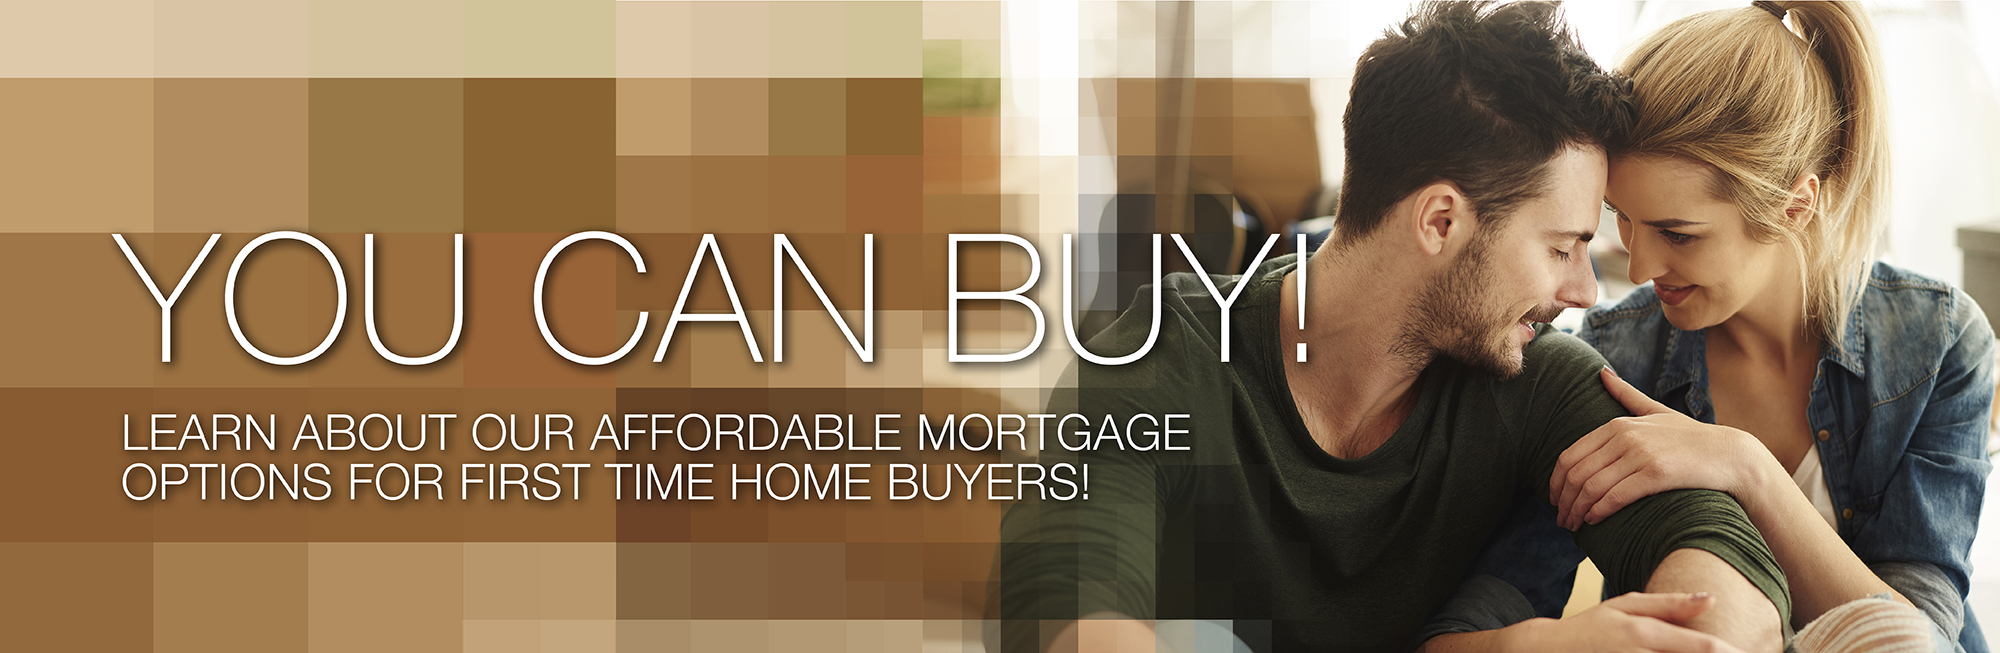 Affordable Mortgage Options for First Time Home Buyers!